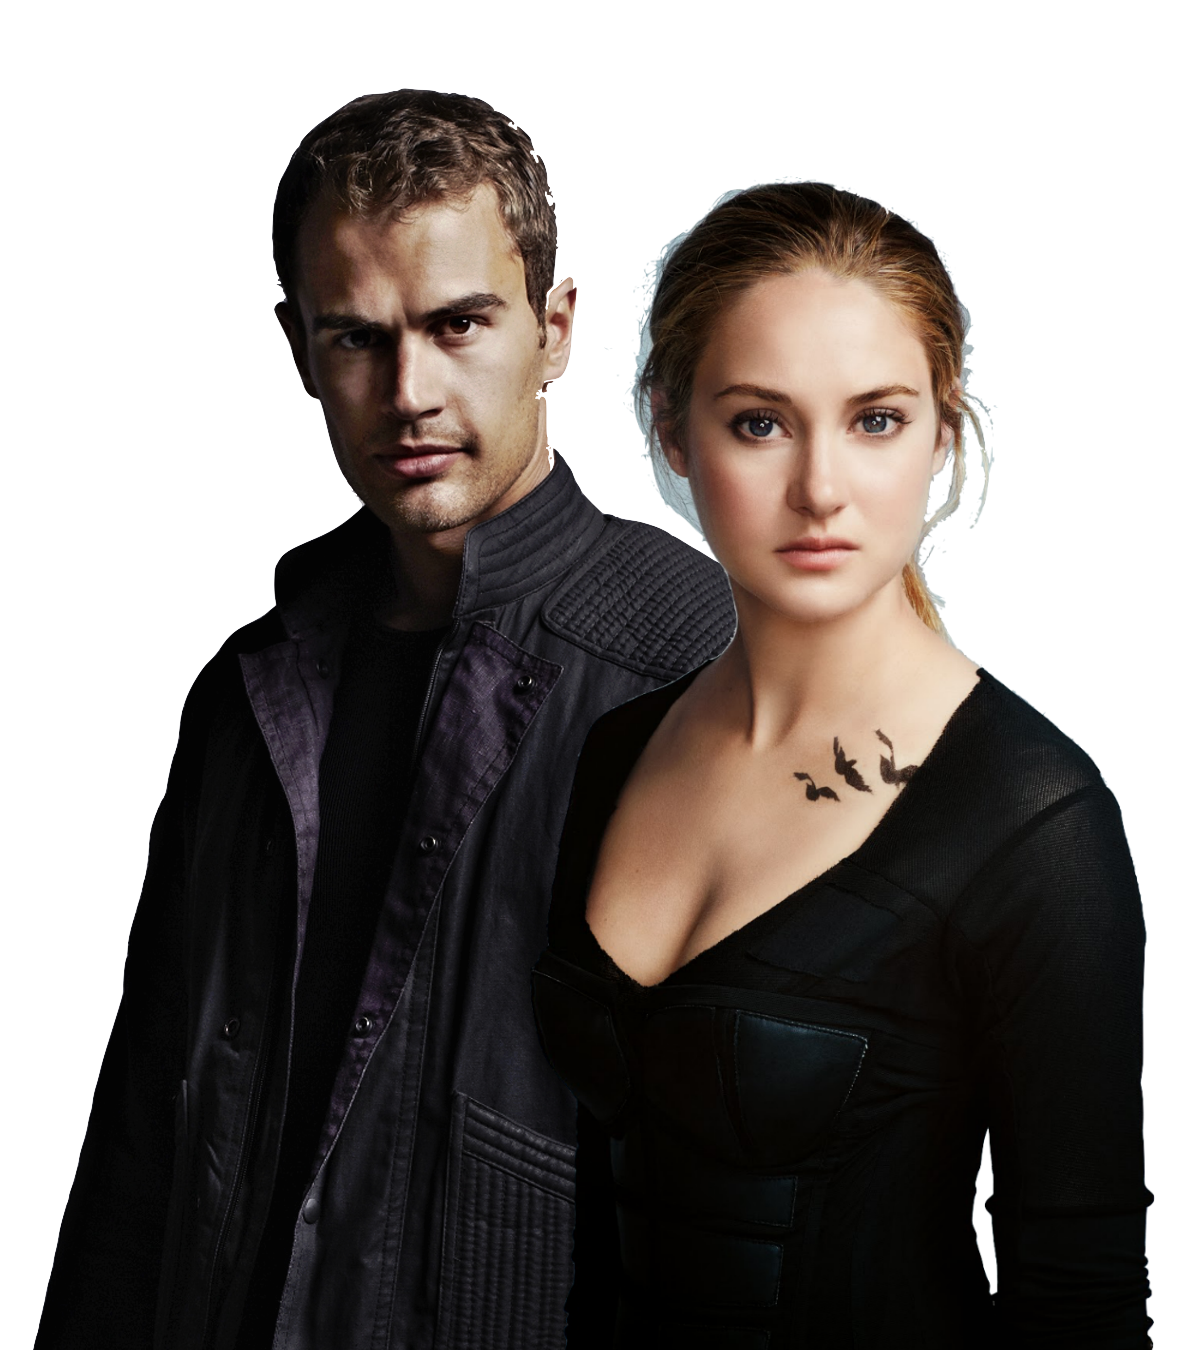 tris and four relationship in divergent is